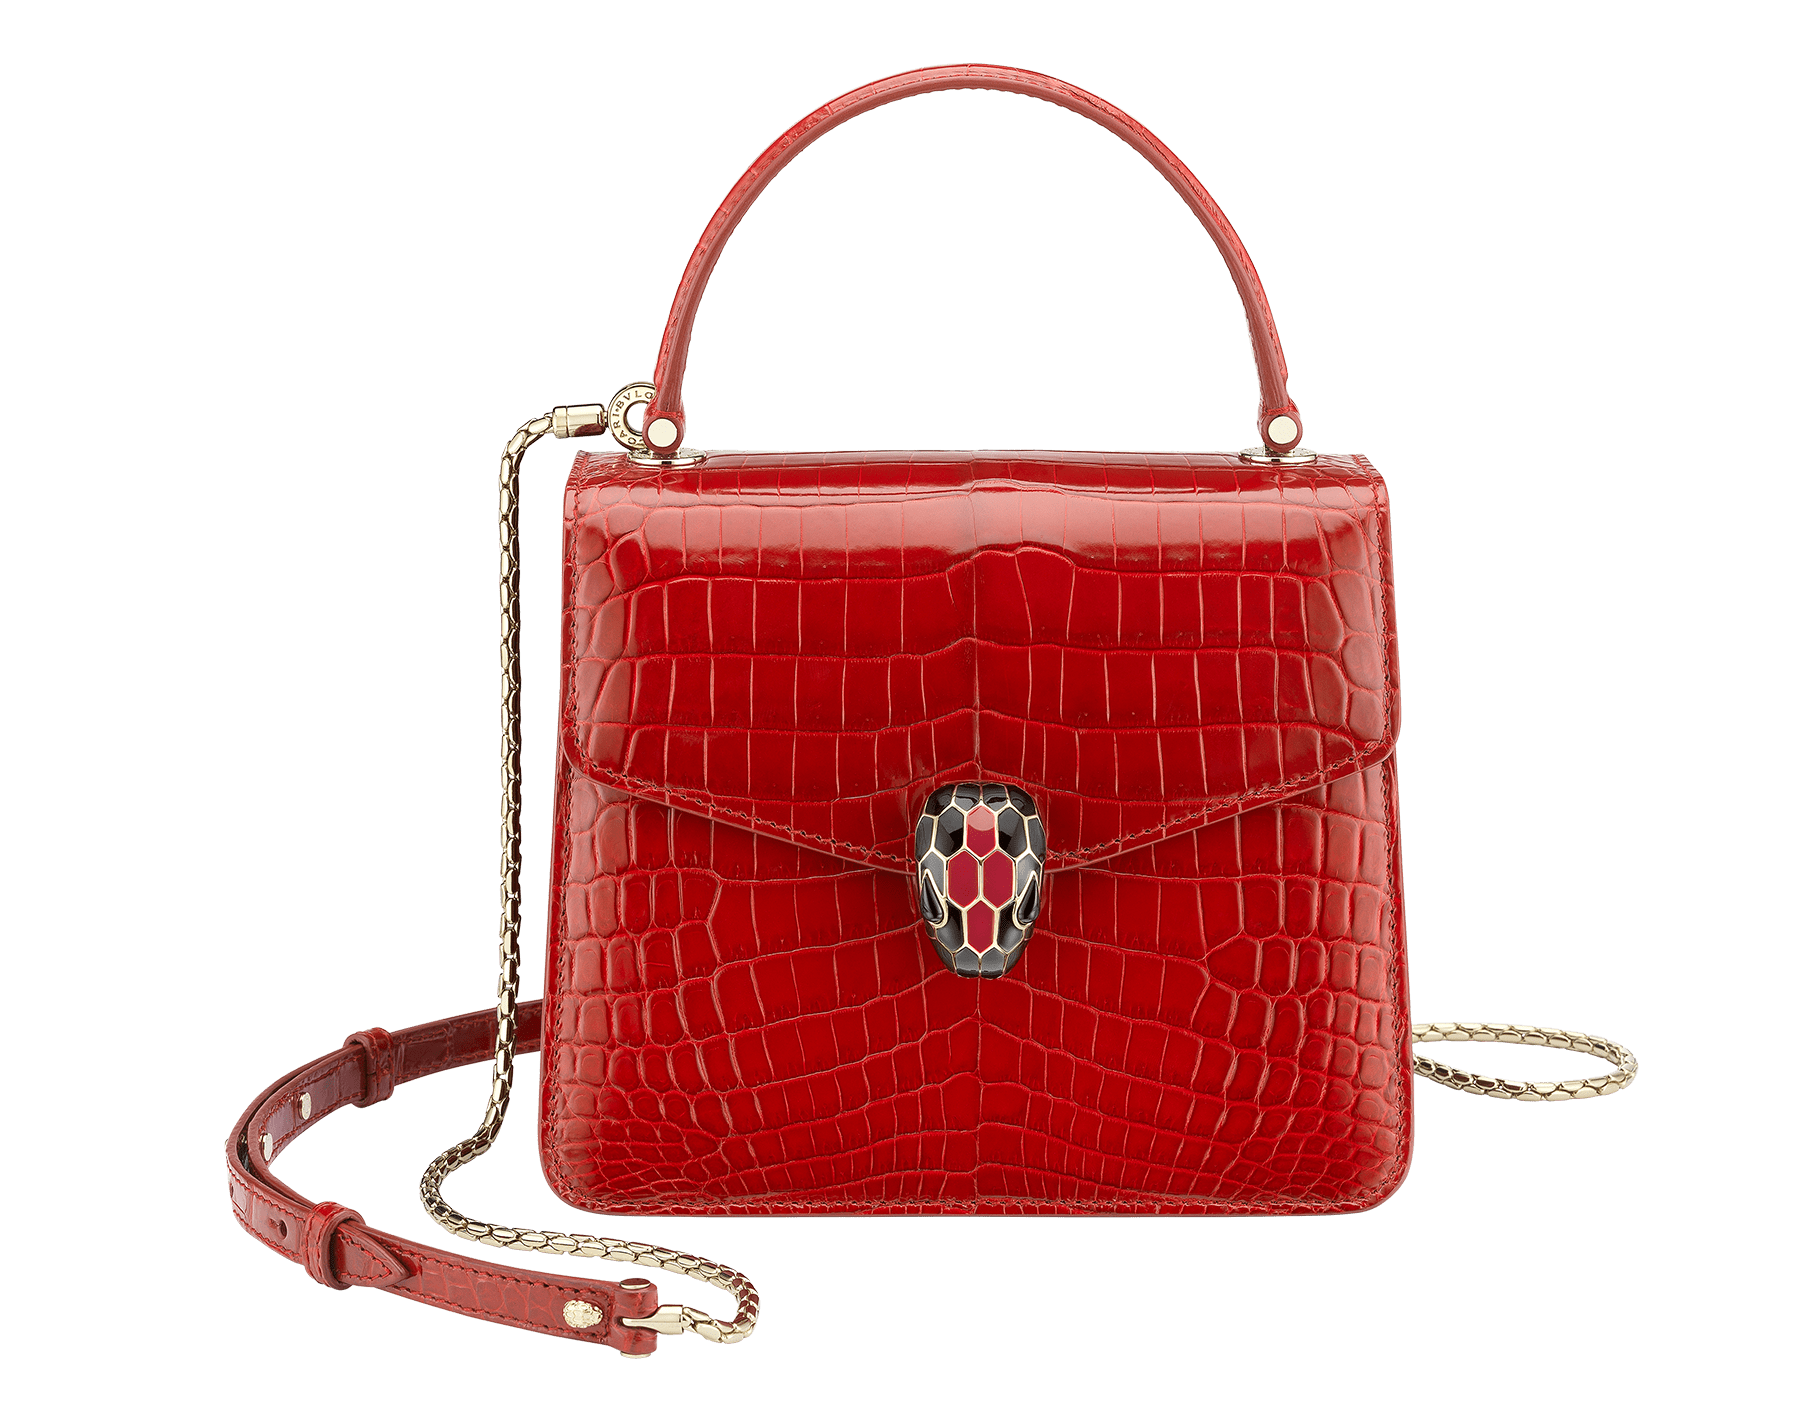 Flap cover bag Serpenti Forever in ruby red shiny croco skin. Brass light gold plated hardware and tempting snake head closure in shiny black and ruby red enamel, with eyes in black onyx. 752-Ca image 1